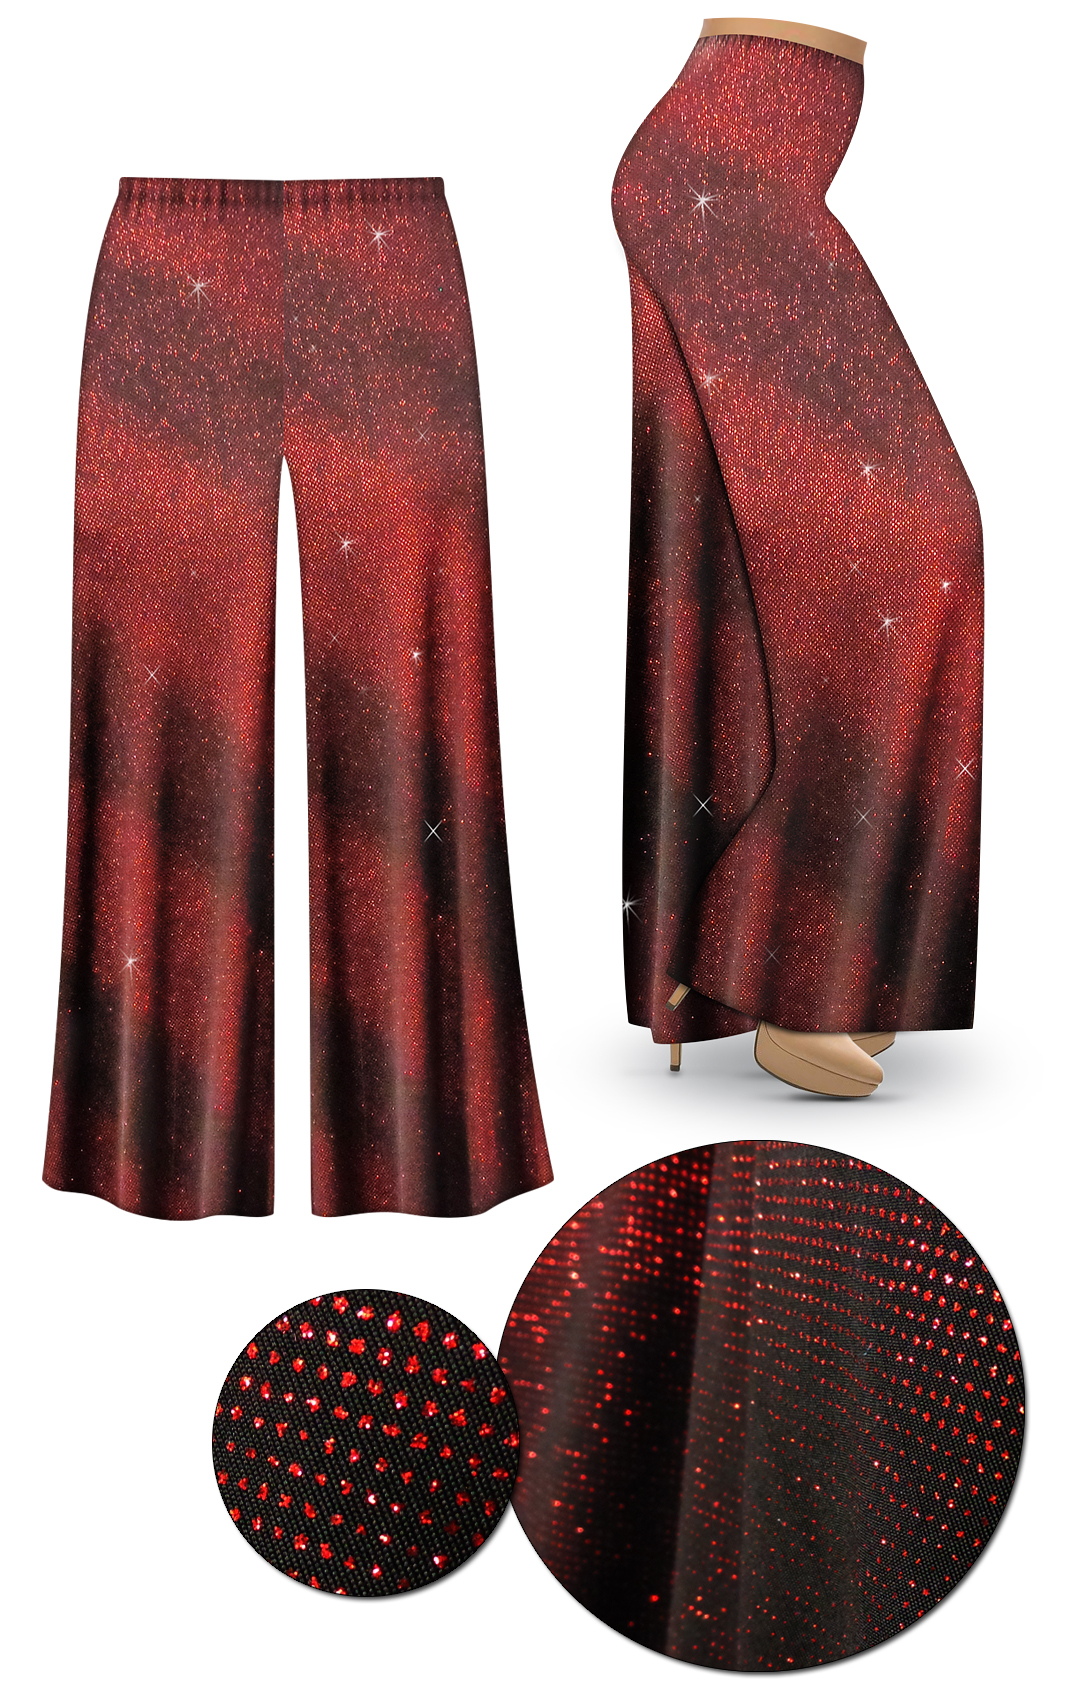 2fed2bdd011 CLEARANCE! Red Glitter Halftone Slinky Print Plus Size   Supersize Palazzo  Pants - Leggings - Capri s - Sizes 5x